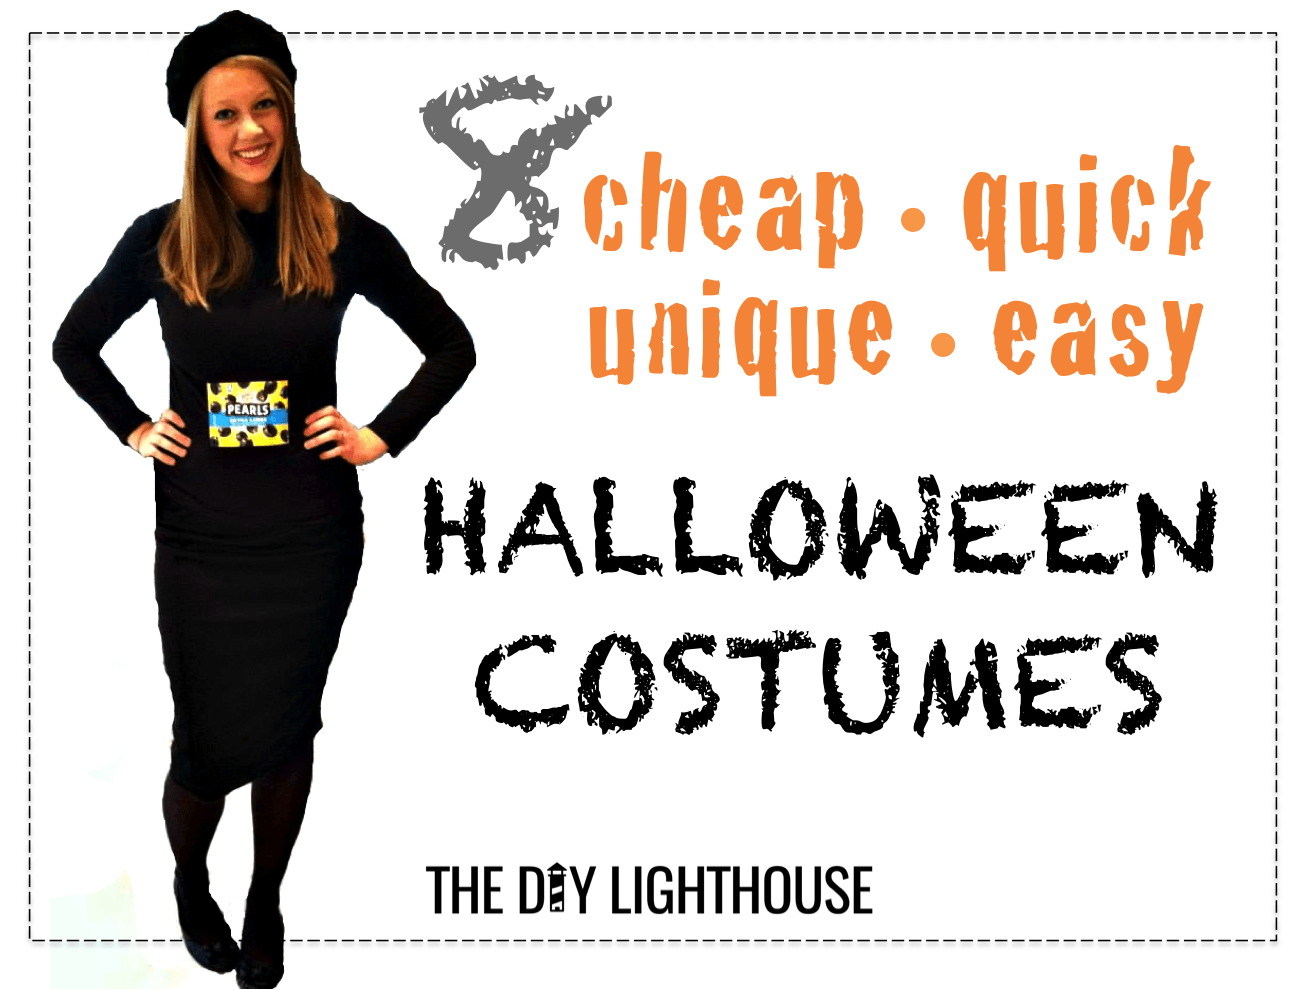 8 ideas for cheap quick unique and easy halloween costumes - Cheap Halloween Dresses